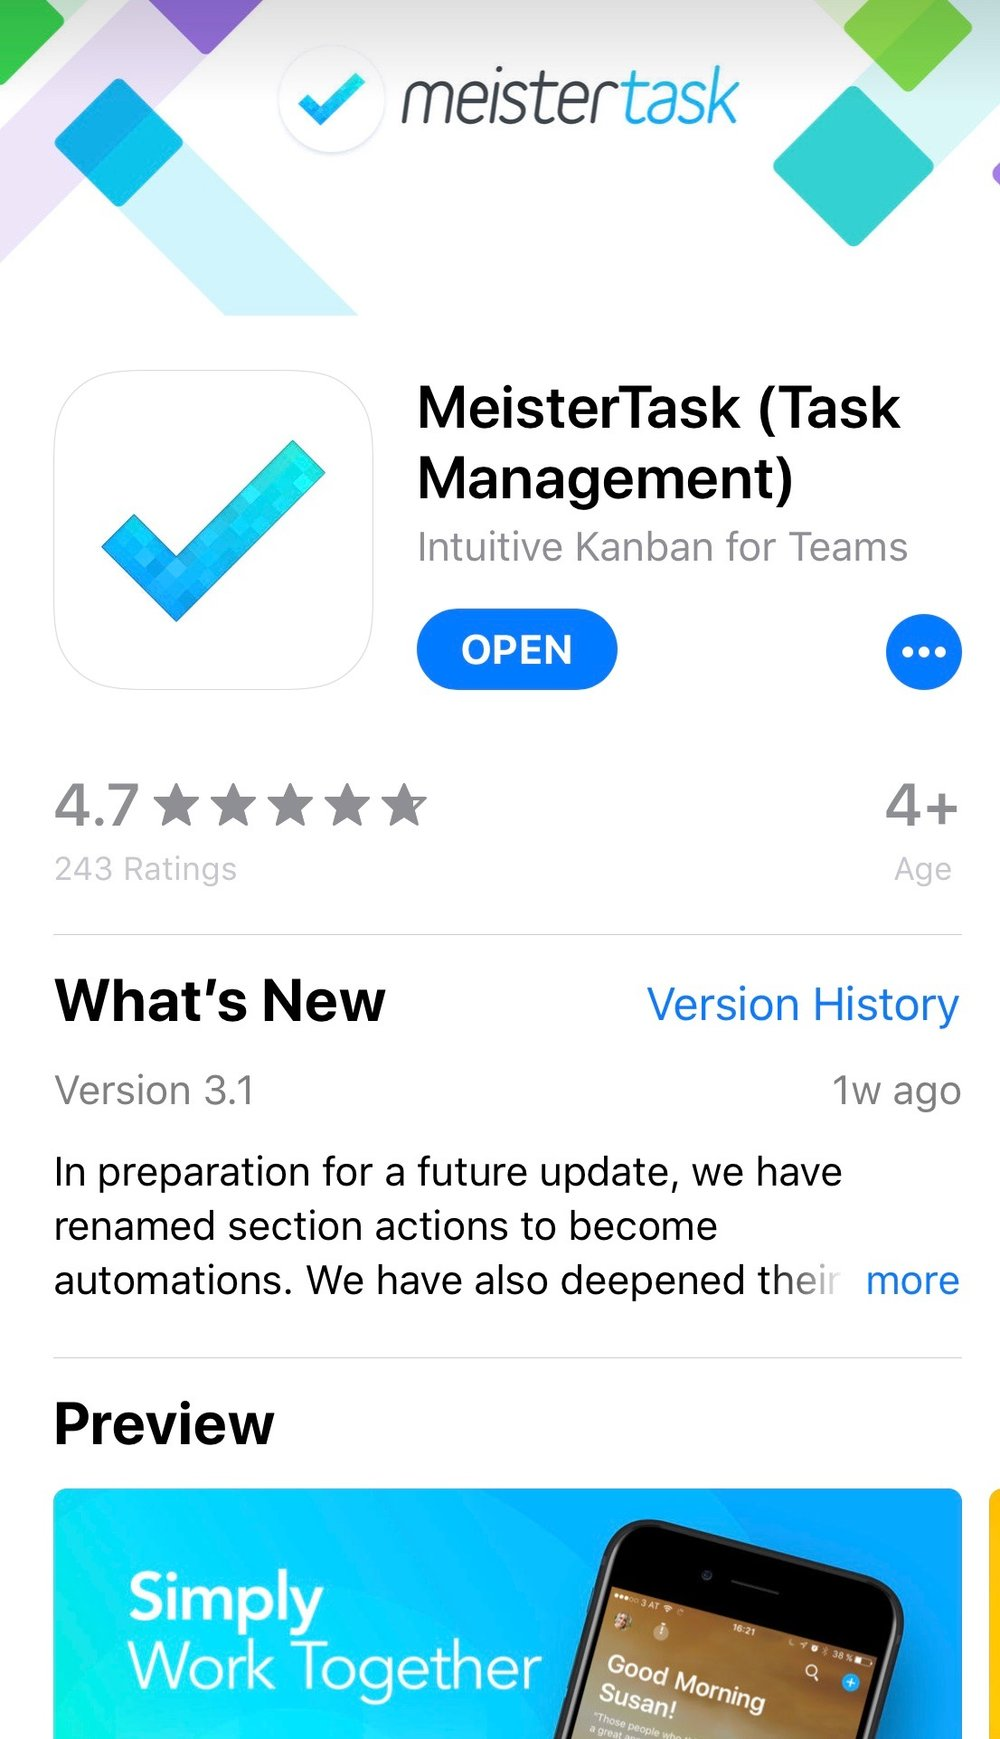 #3 MeisterTask: Create the Ultimate Project Workflow - MiesterTask is more than just a To Do list. This app allows me to layout my work flows. If you have multiple projects or projects that require a work flow progression (i.e. In Progress / Sent / Invoiced / Paid / Completed) this is the best app around! I searched for an app like this for years and I was over the moon when I finally found it!